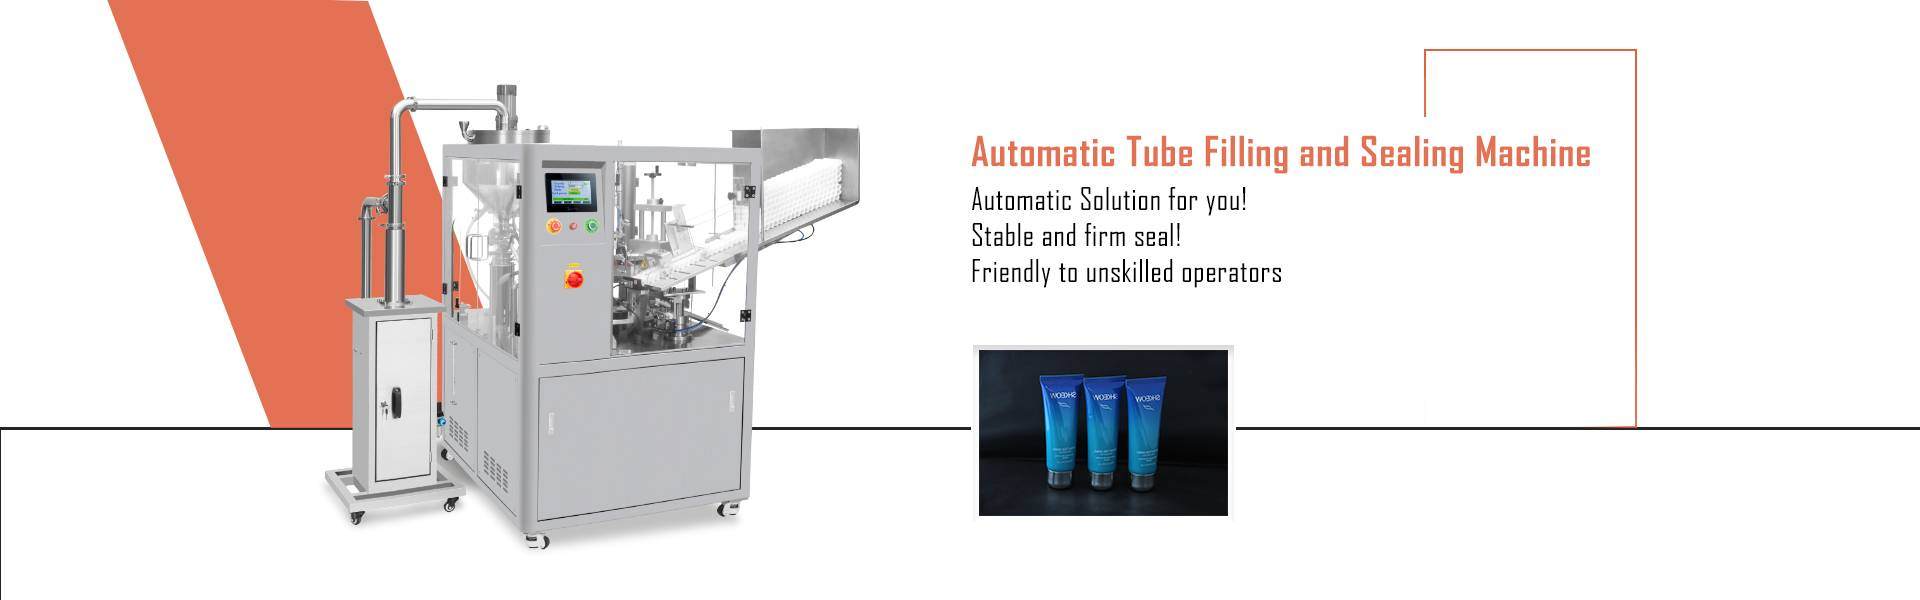 automatic-ultrasonic-tube-filler-and-sealer-hx-009-product